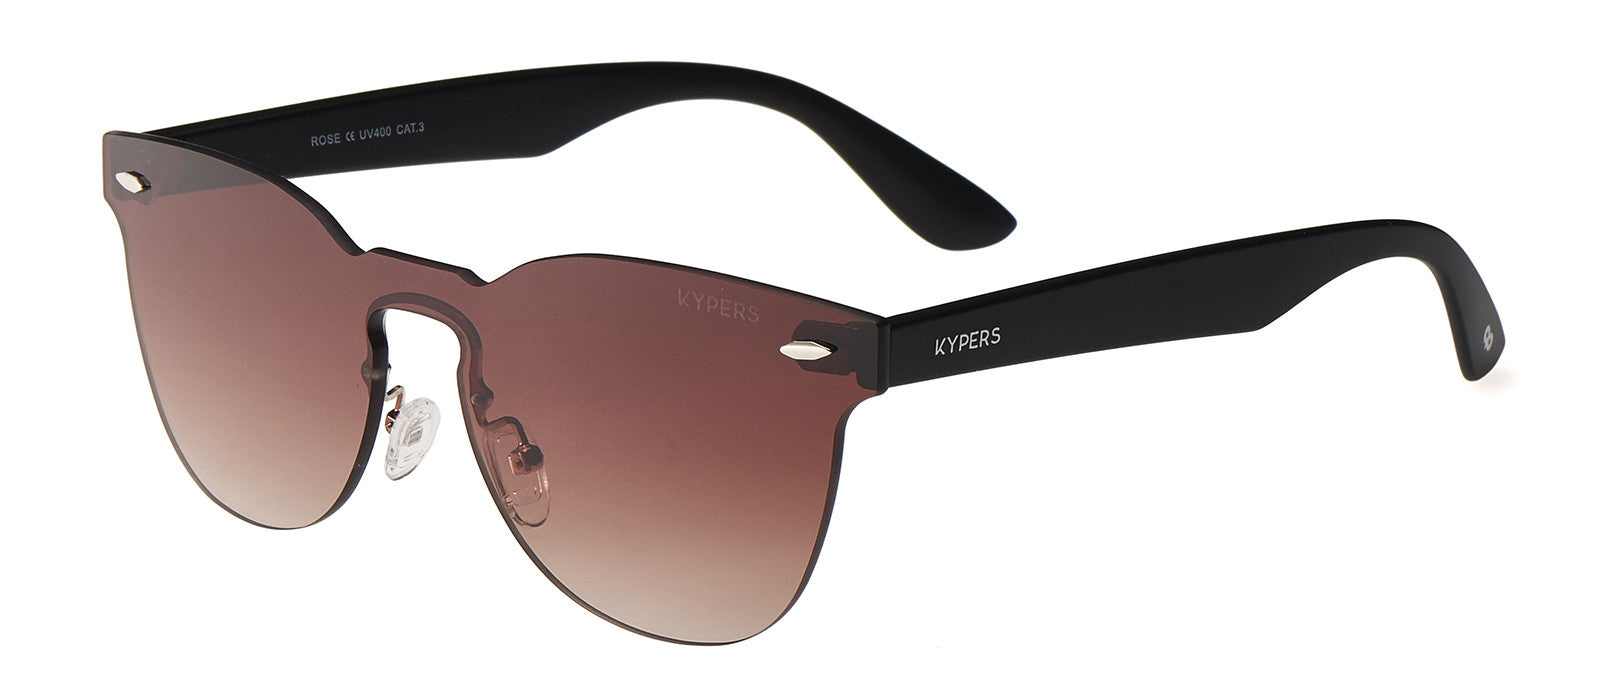 KYPERS sunglasses model ROB  with  frame and  lens